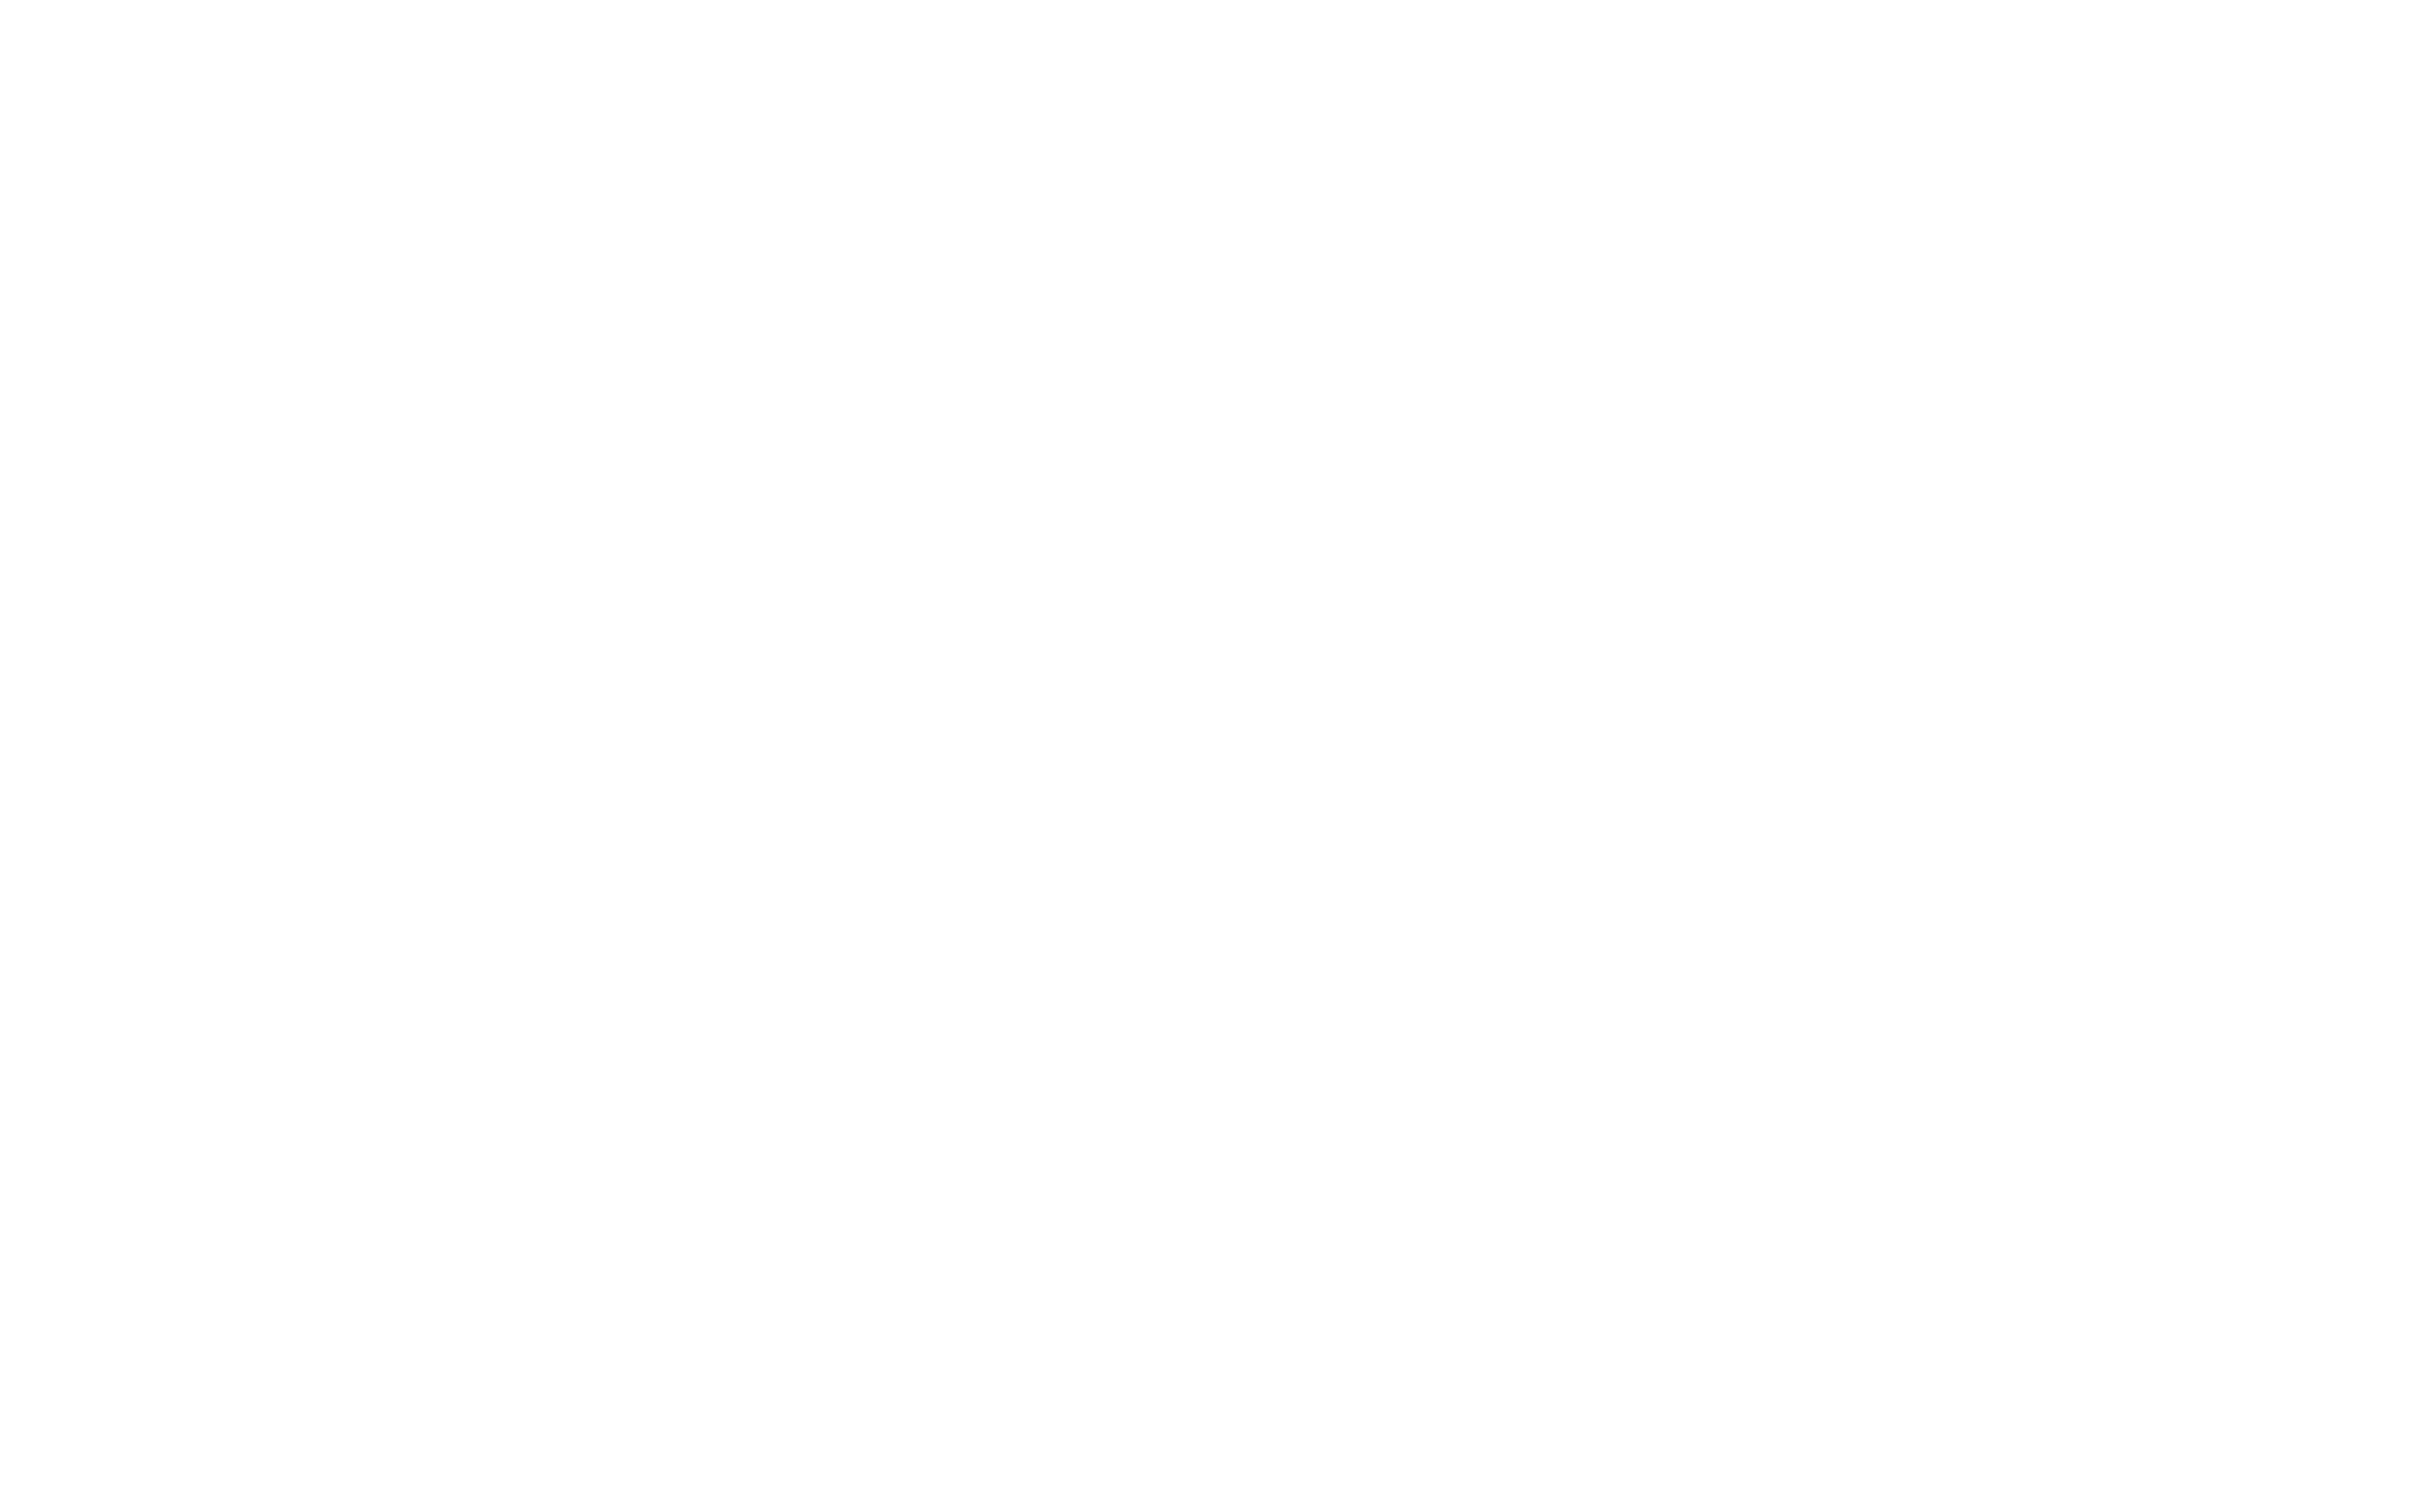 esa-logo